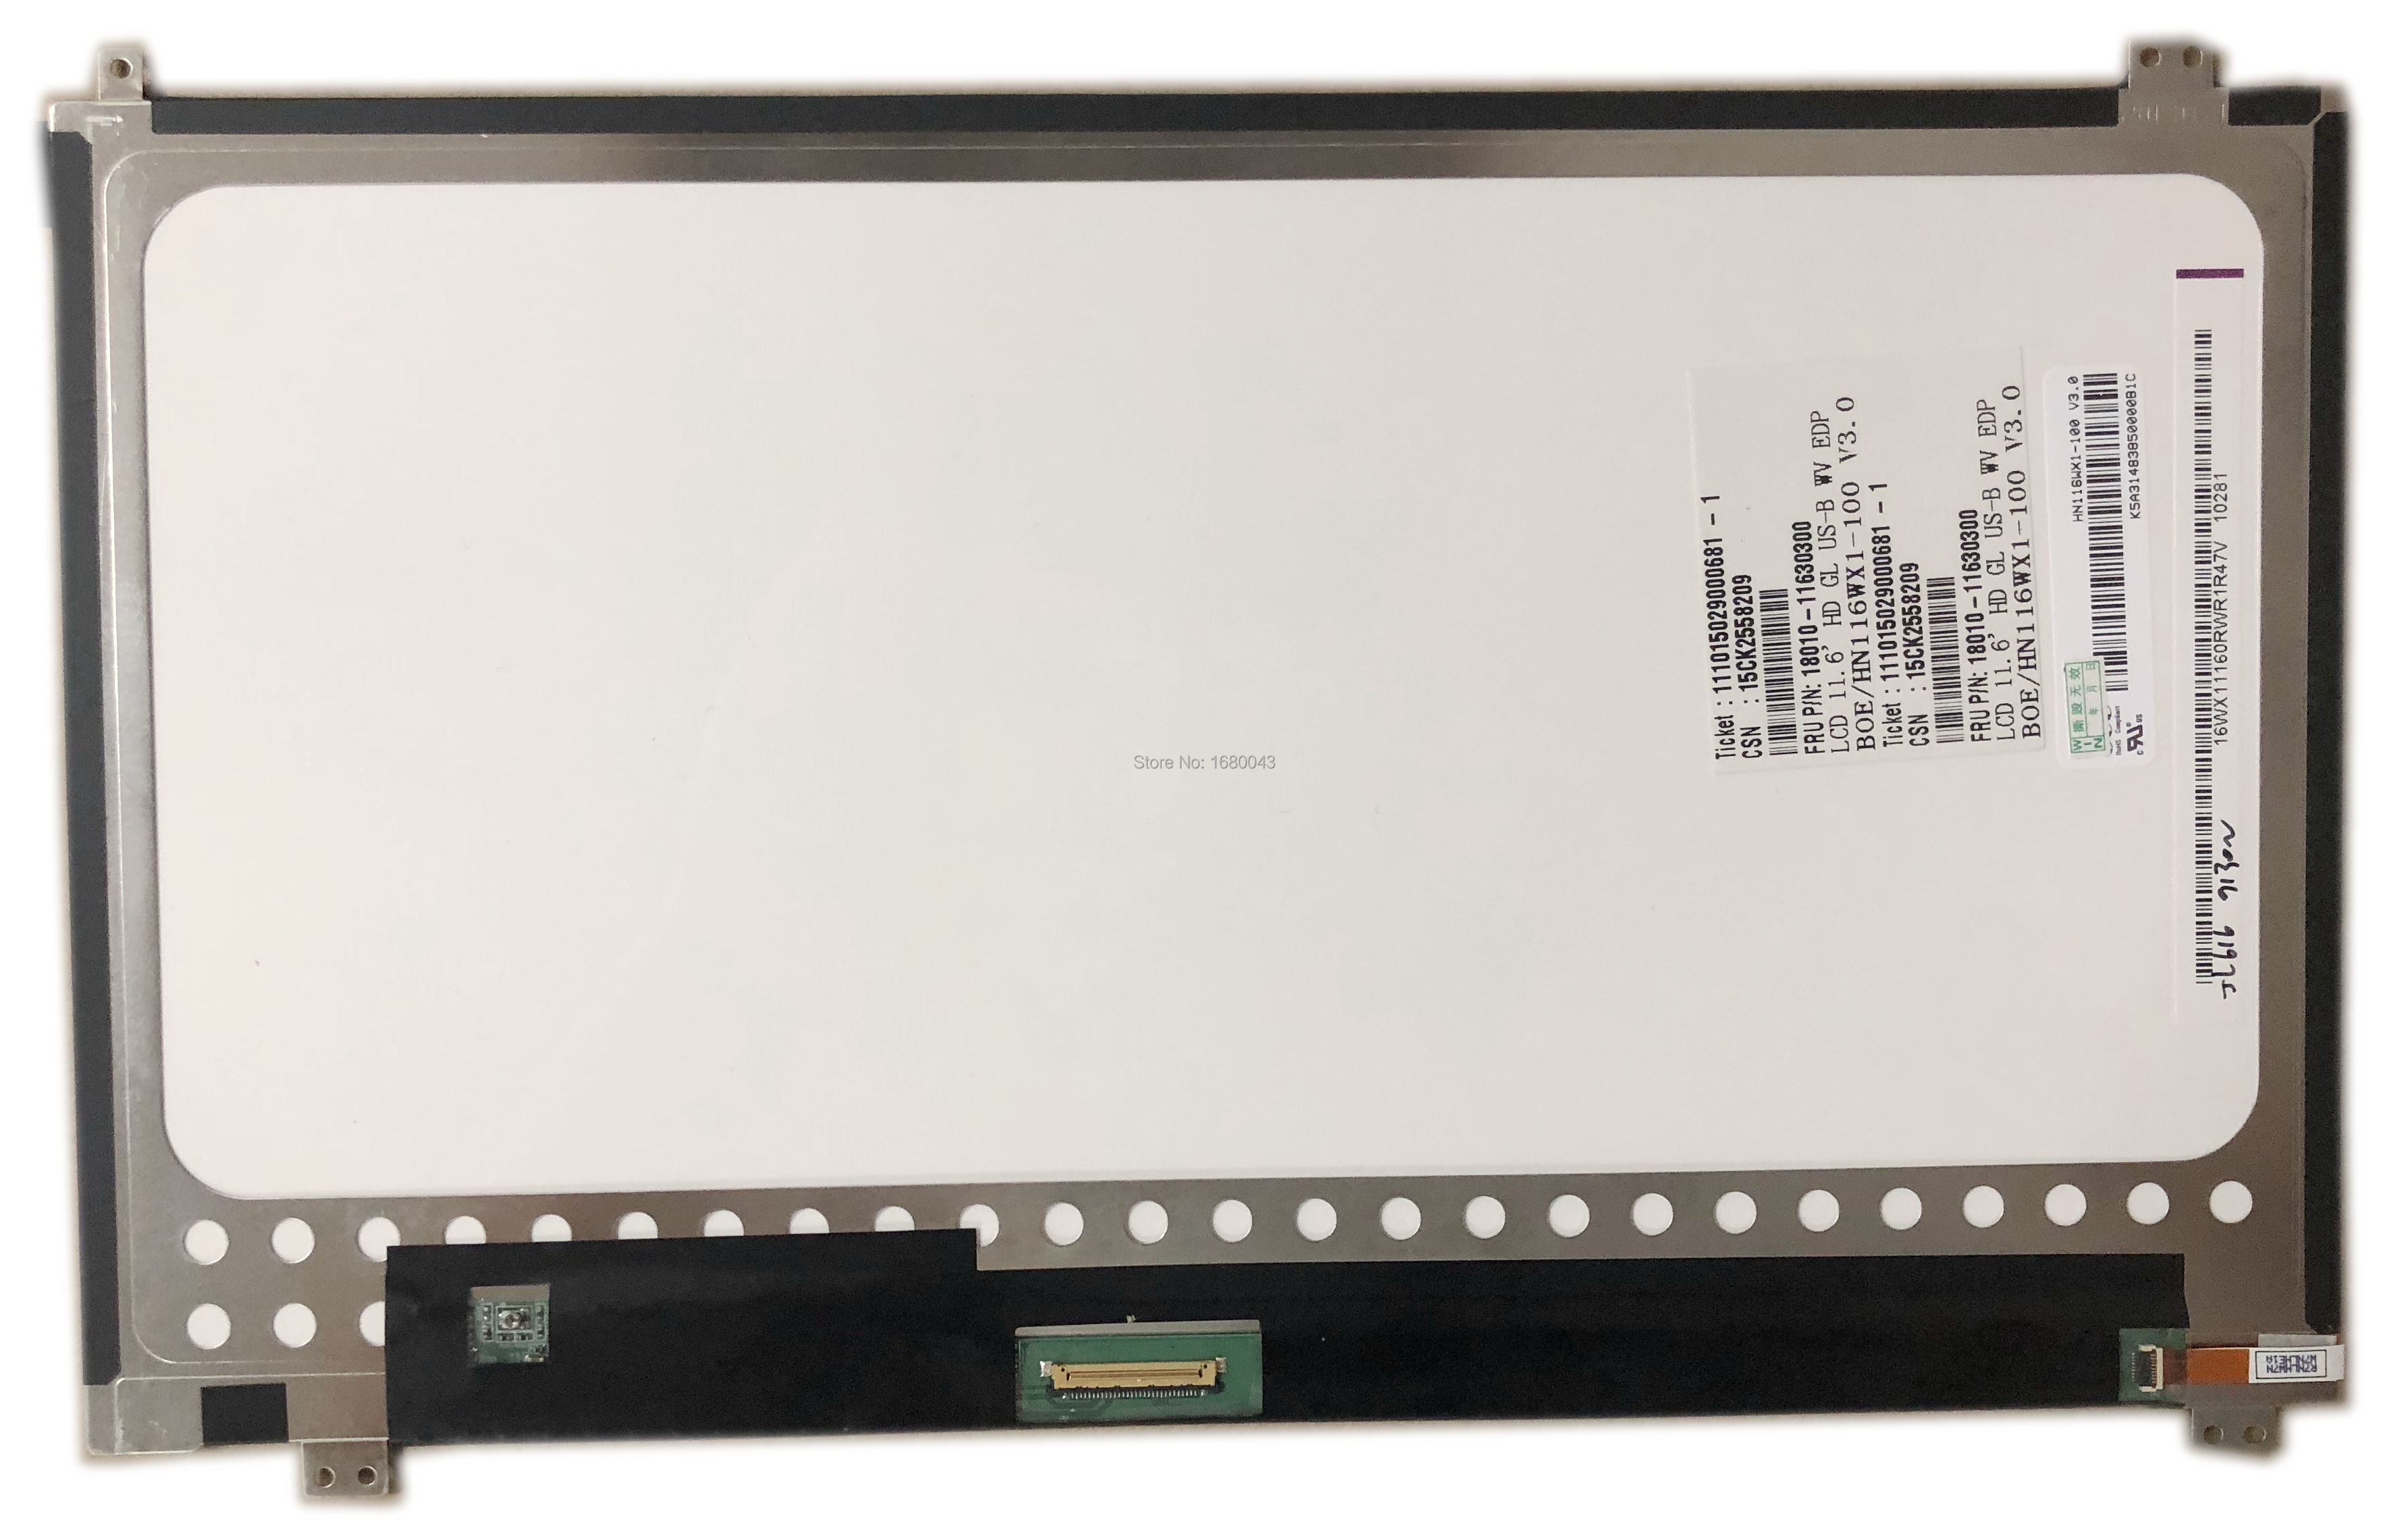 HN116WX1-100 V3.0 Fit M116NWR4 R0 IPS LED LCD Screen Panel 30PIN EDP 11.6 Inch For Asus Transformer Book T200TA